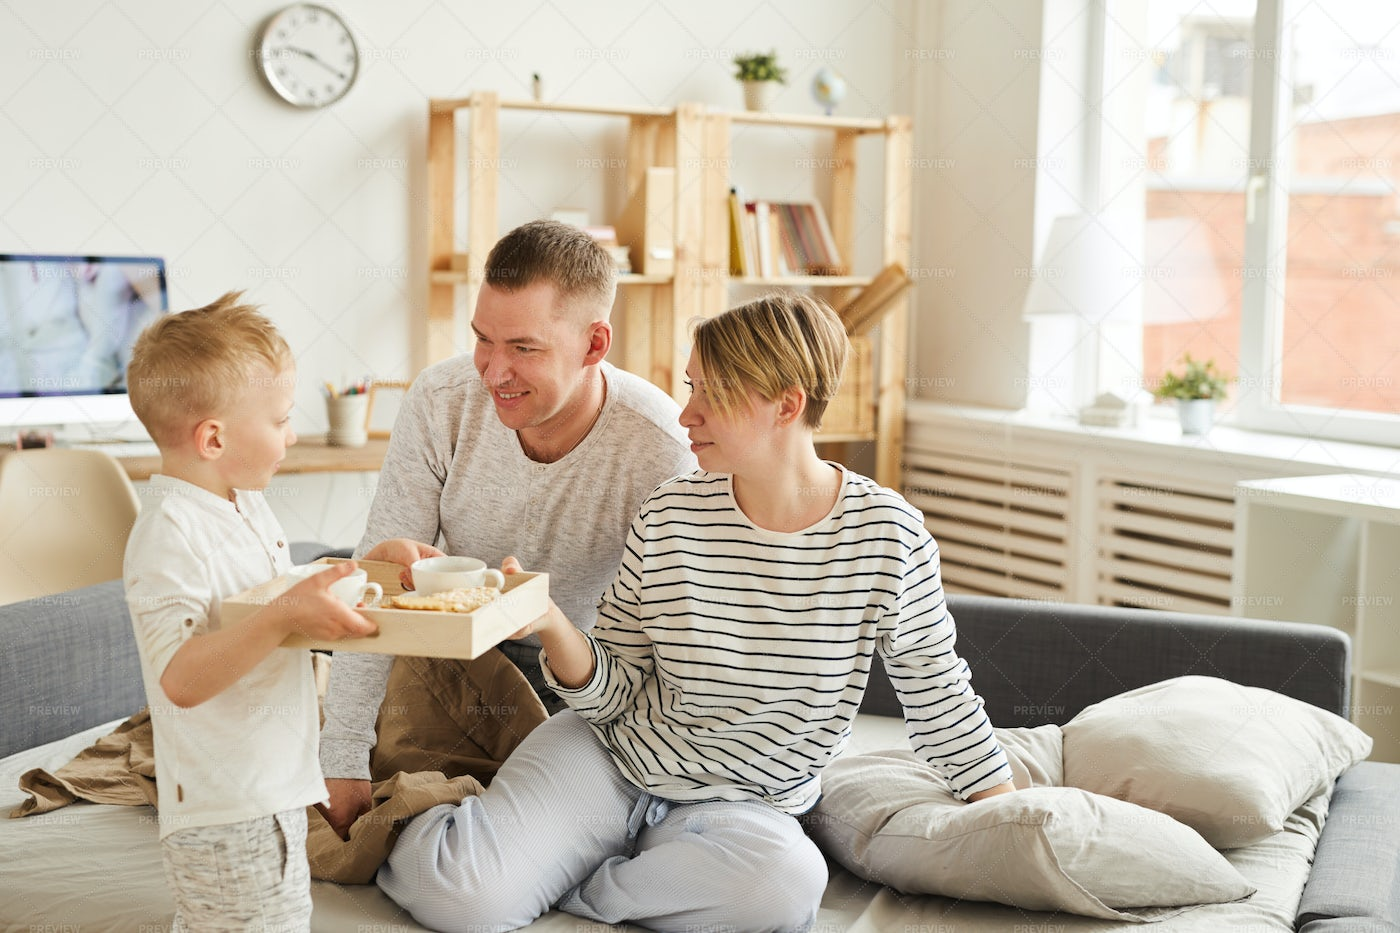 Son Taking Care Of Parents: Stock Photos